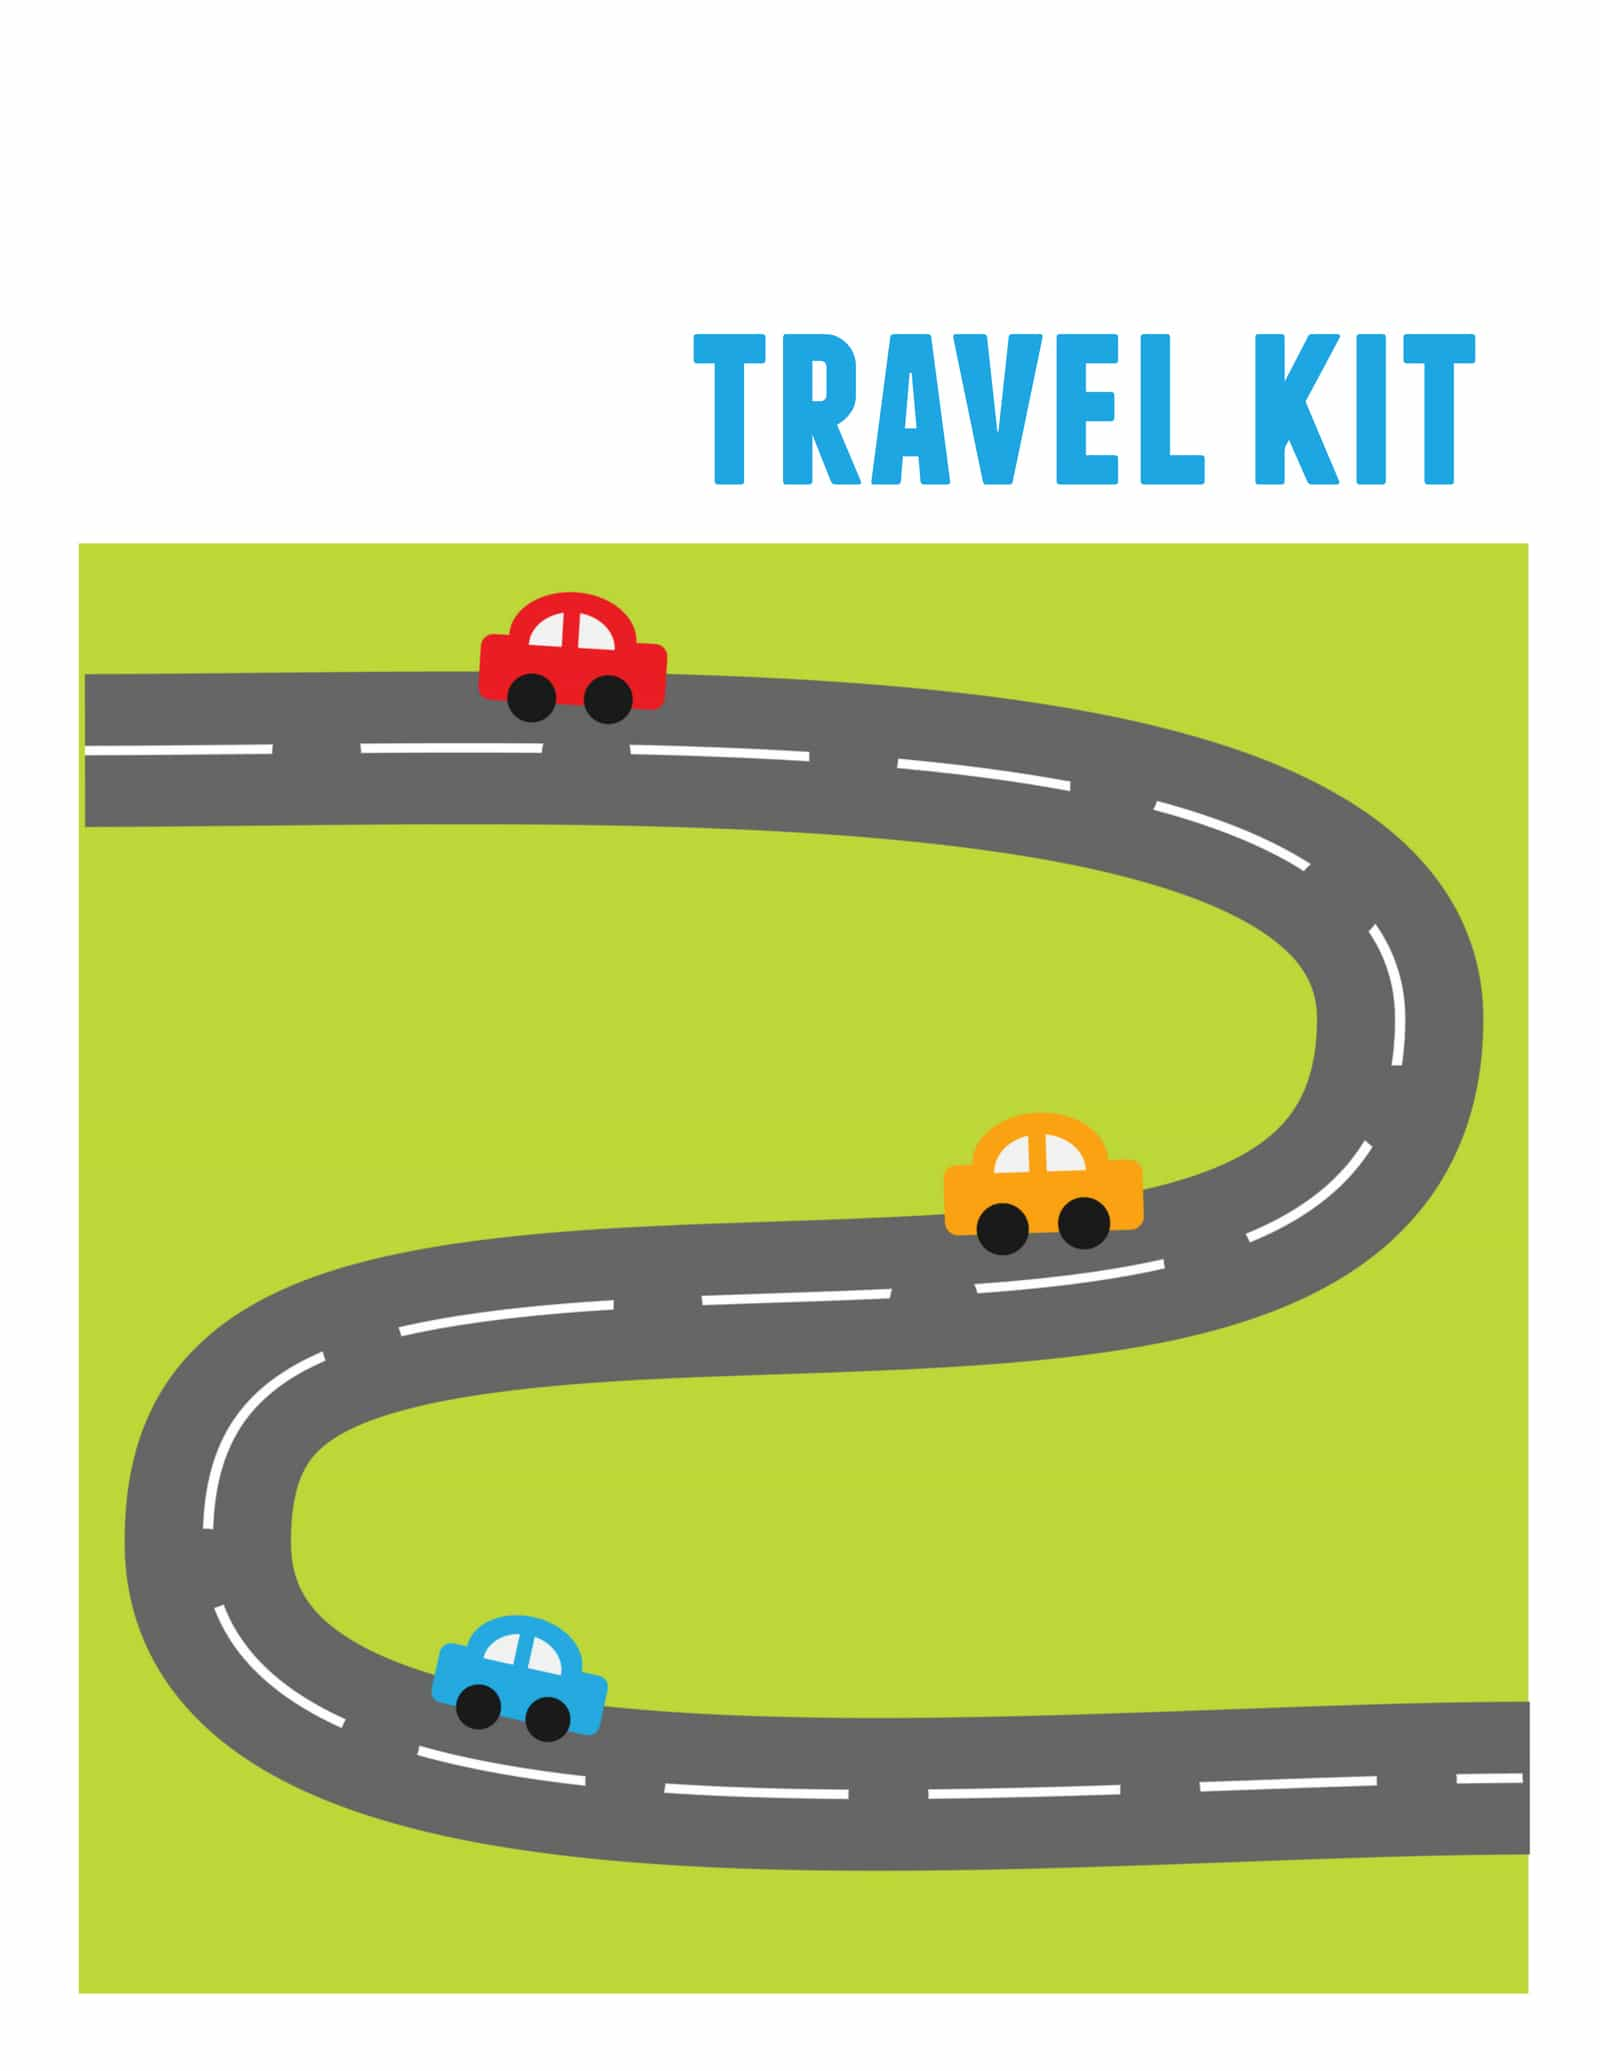 free printable kids travel kit template how to make a simple kids travel kit binder - Free Printable Preschool Activities